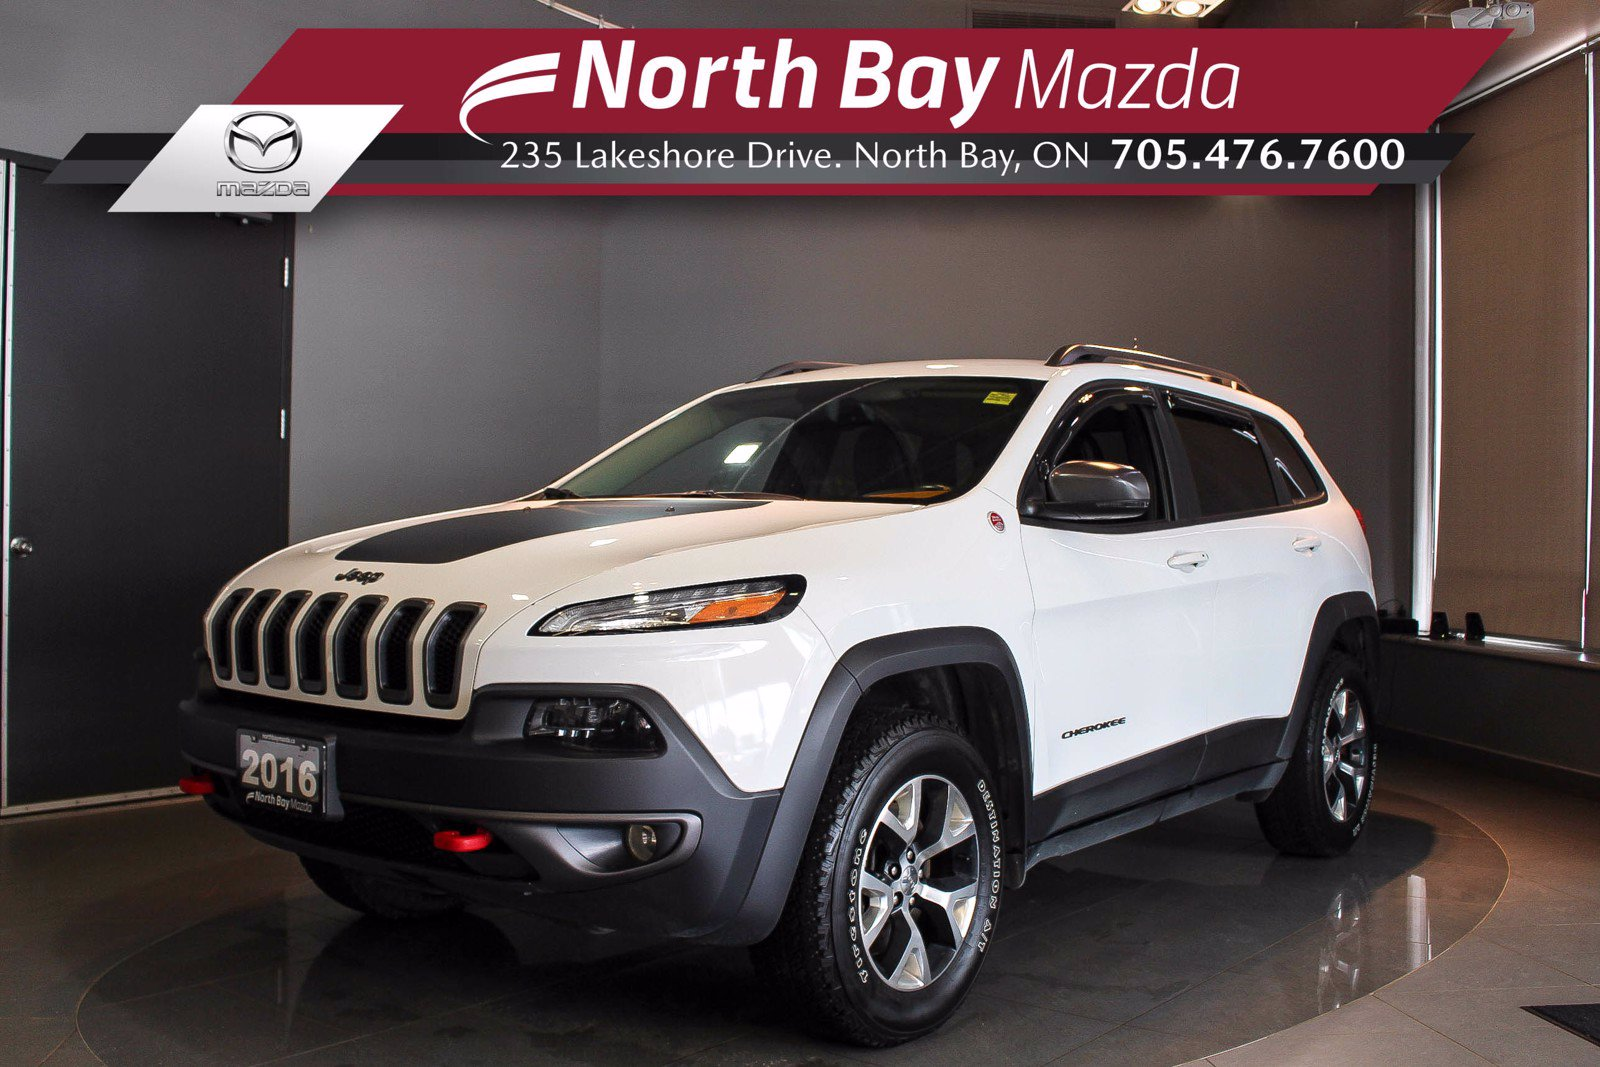 Pre-Owned 2016 Jeep Cherokee Trailhawk 4WD - Click Here! Test Drive Appts Available!